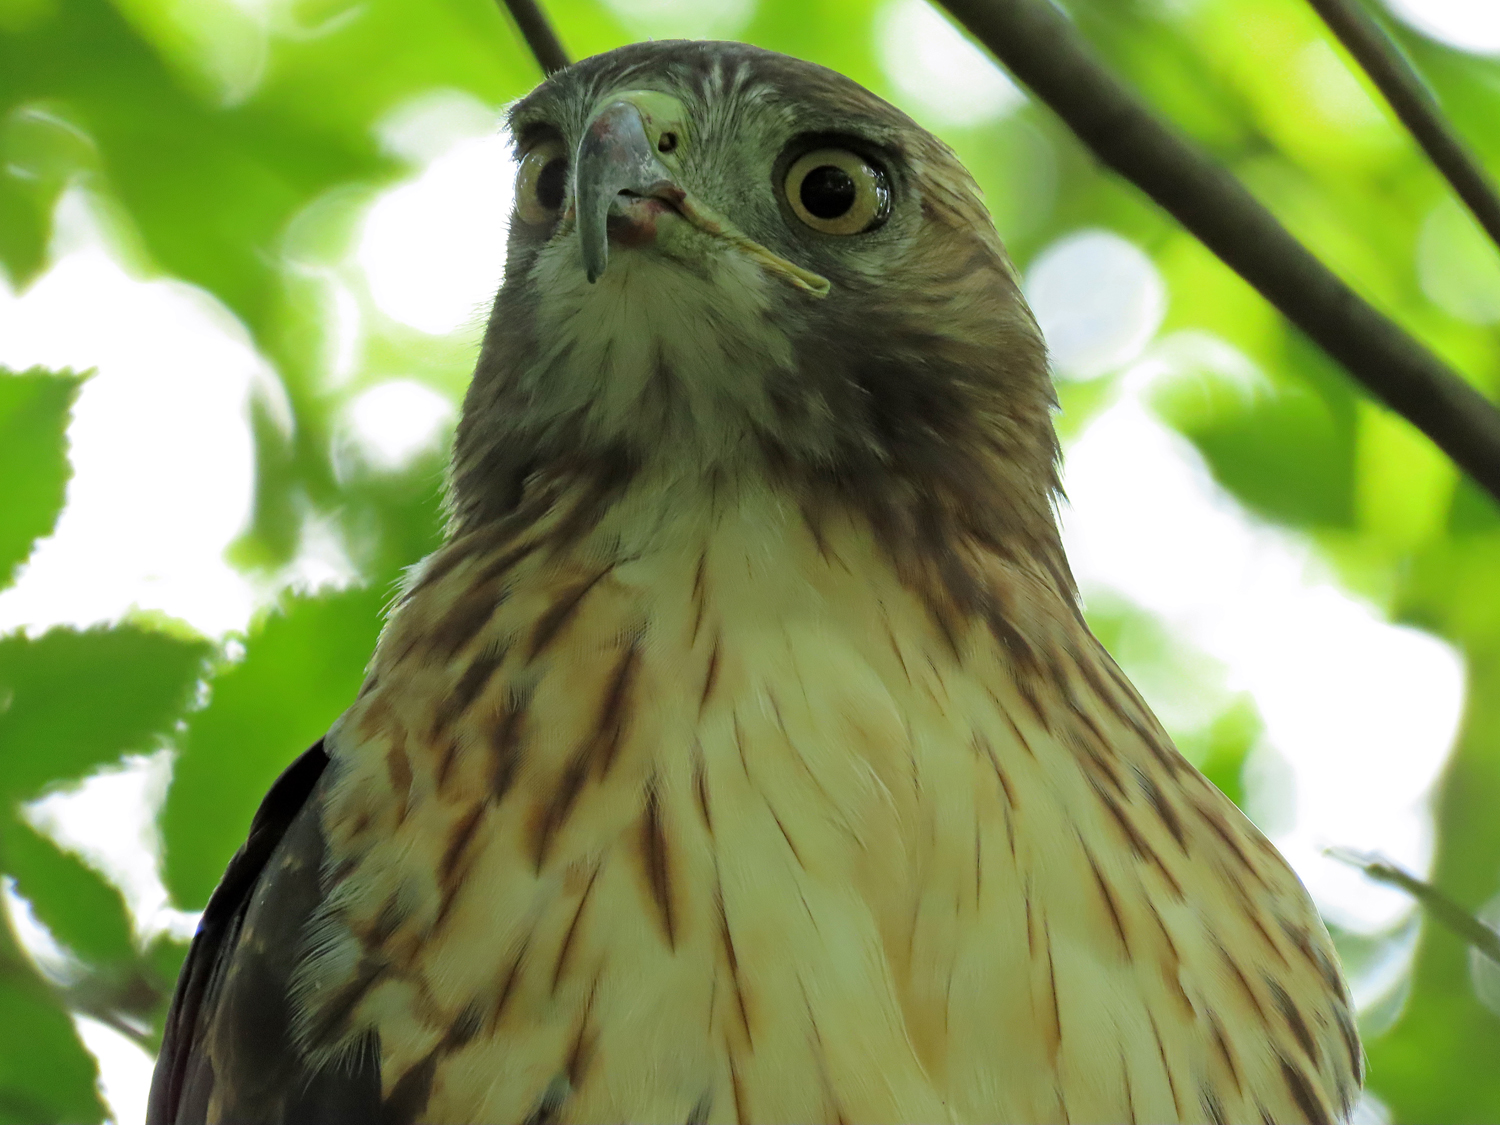 Young adult red-tailed hawk, Central Park, September 9, 2019